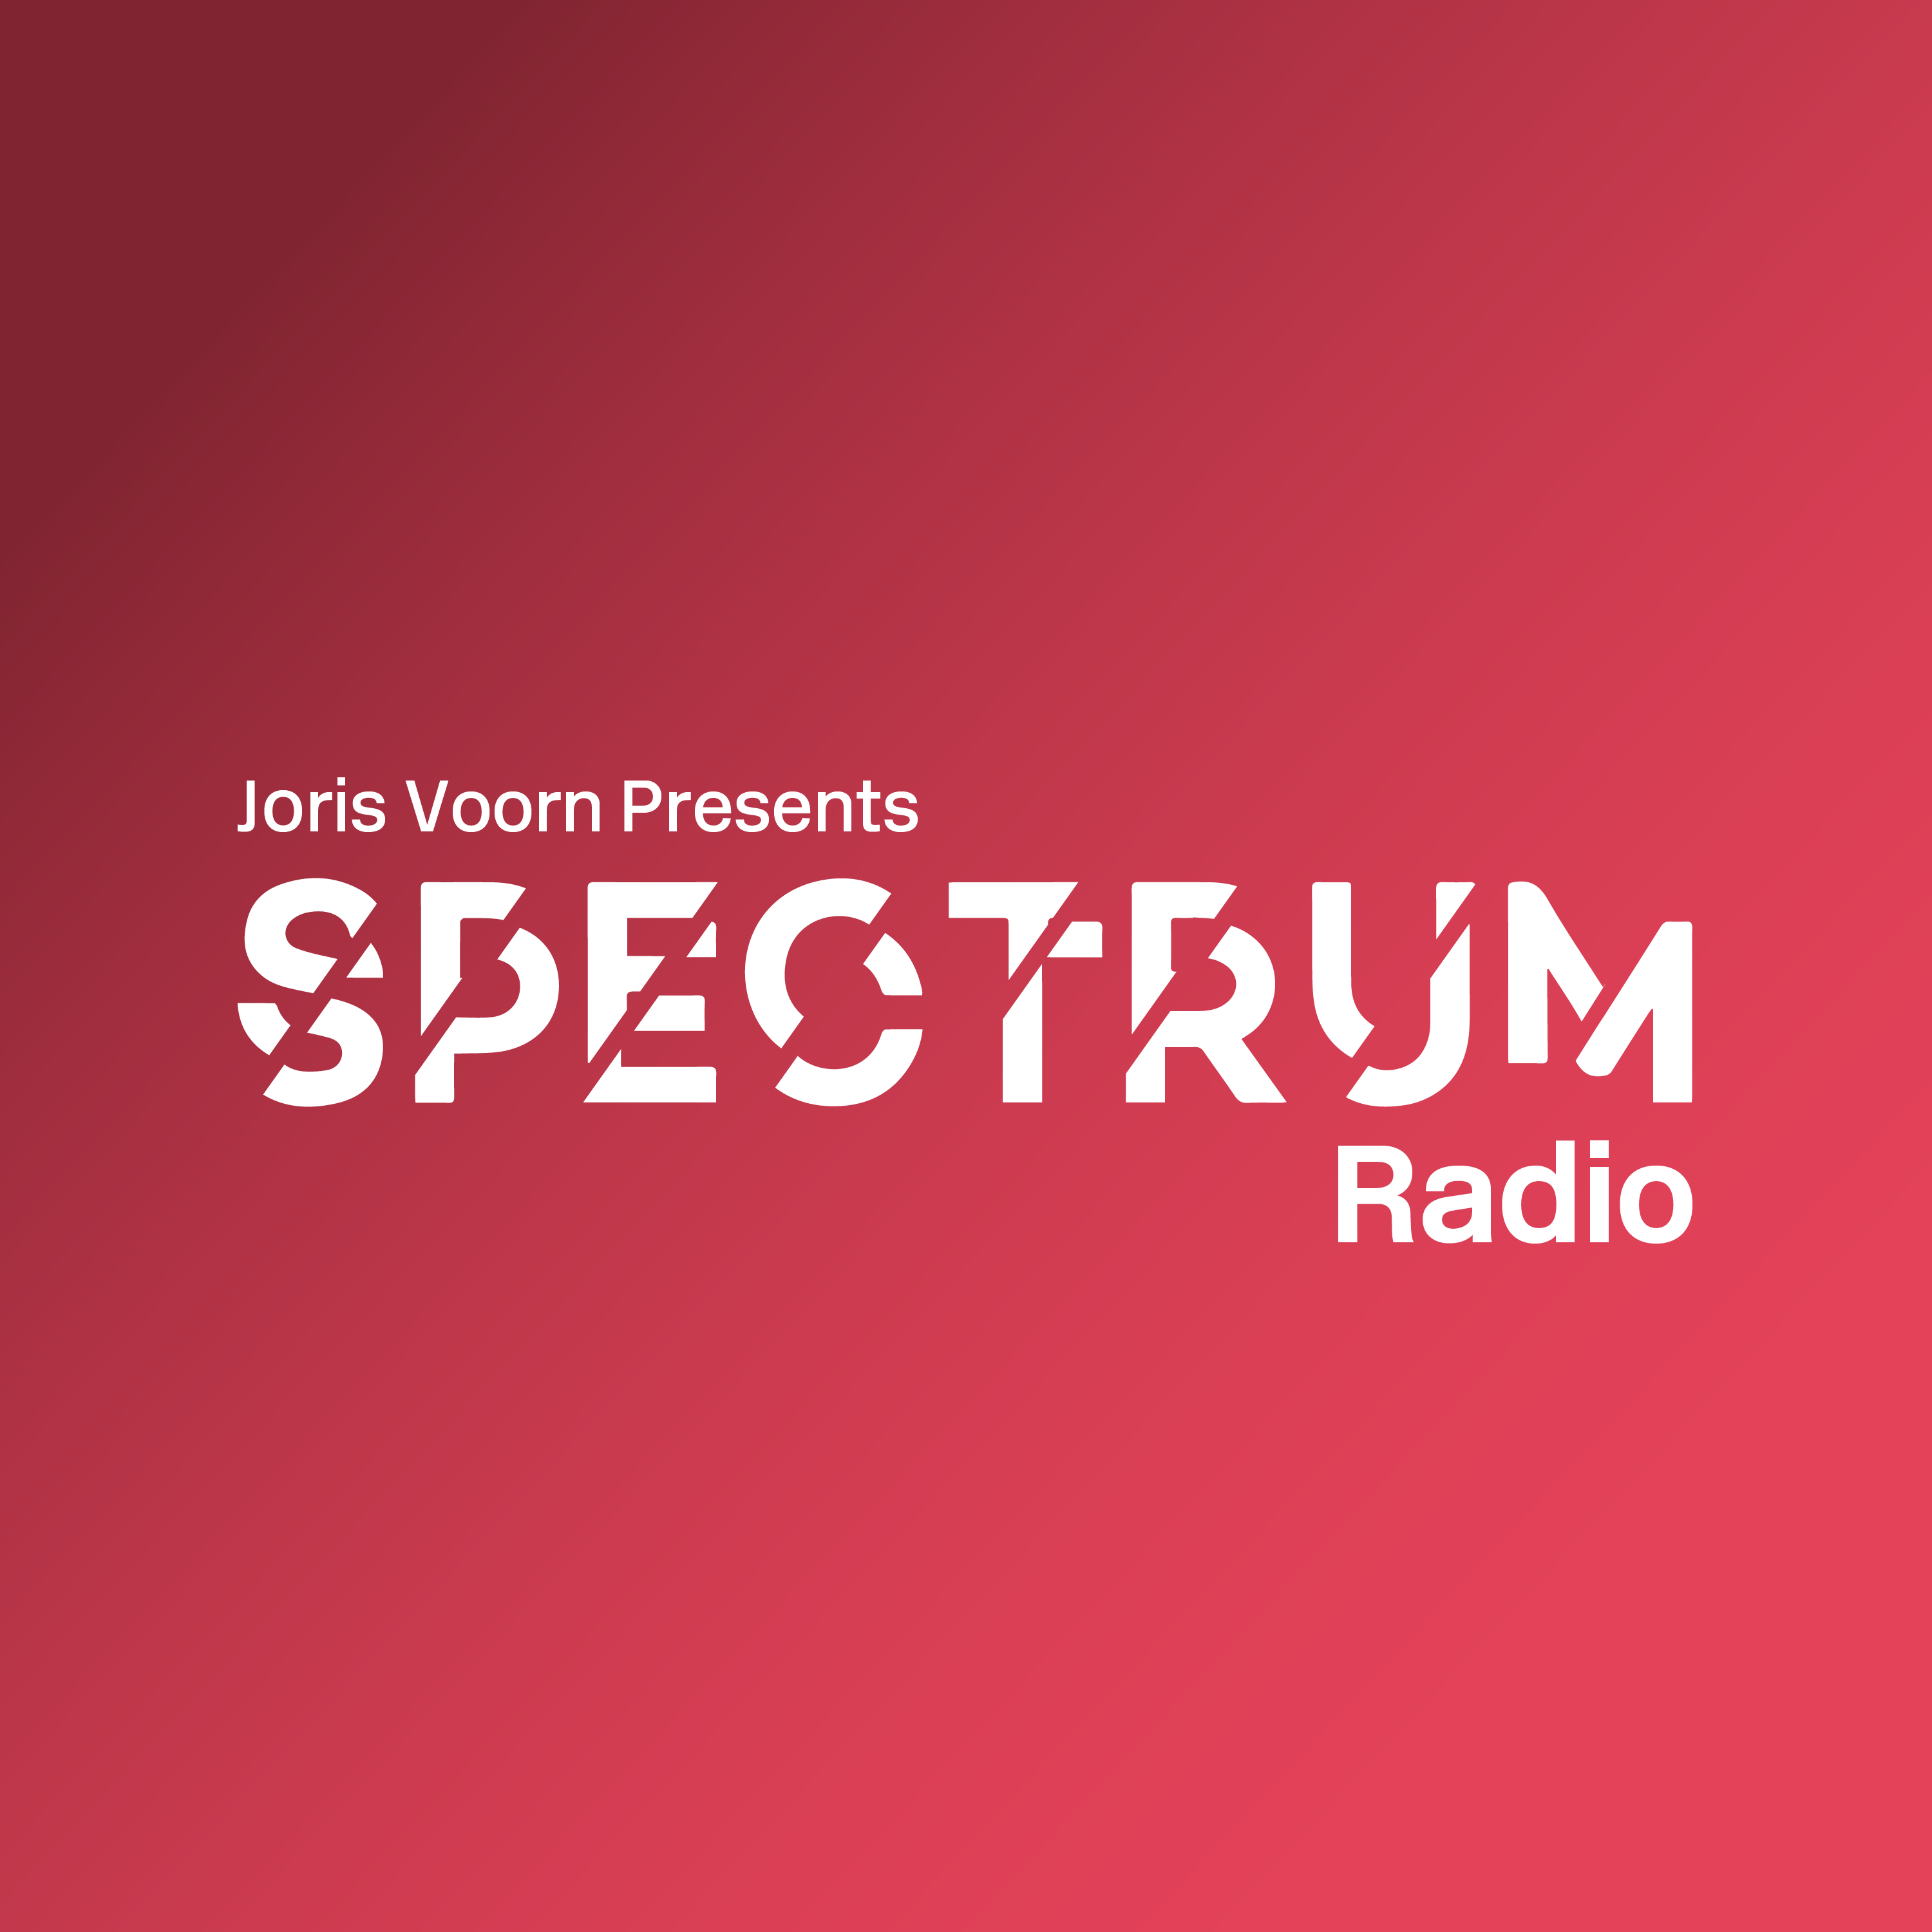 Delta Podcasts - Spectrum Radio by Joris Voorn (26.11.2017)